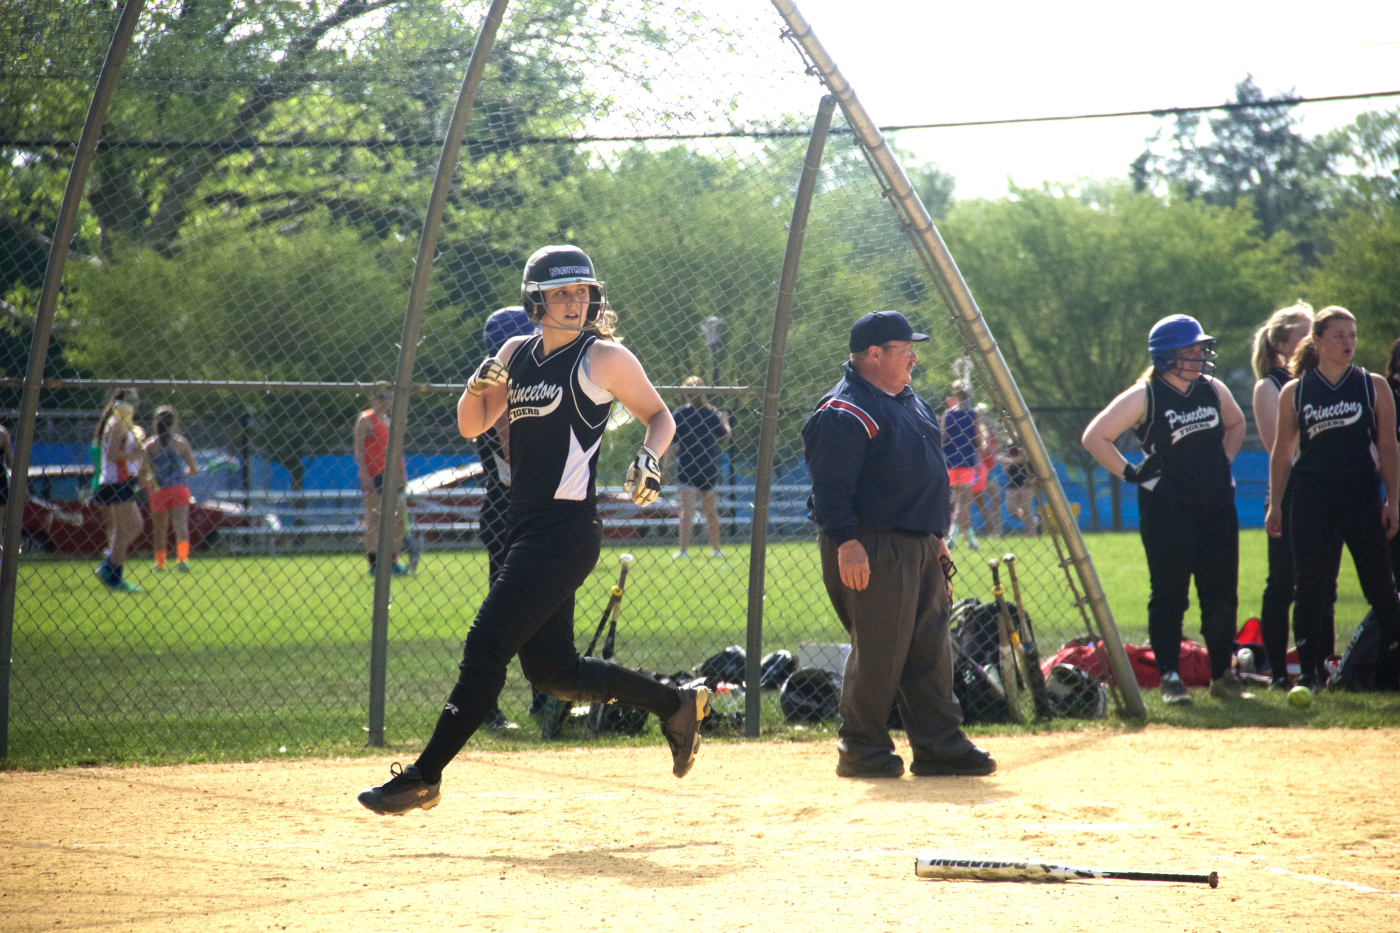 Kelli Swedish '16 scores the team's only run against Steinert High School at the John Witherspoon softball field on May 15. Princeton lost 1–3. Photo: Caroline Smith